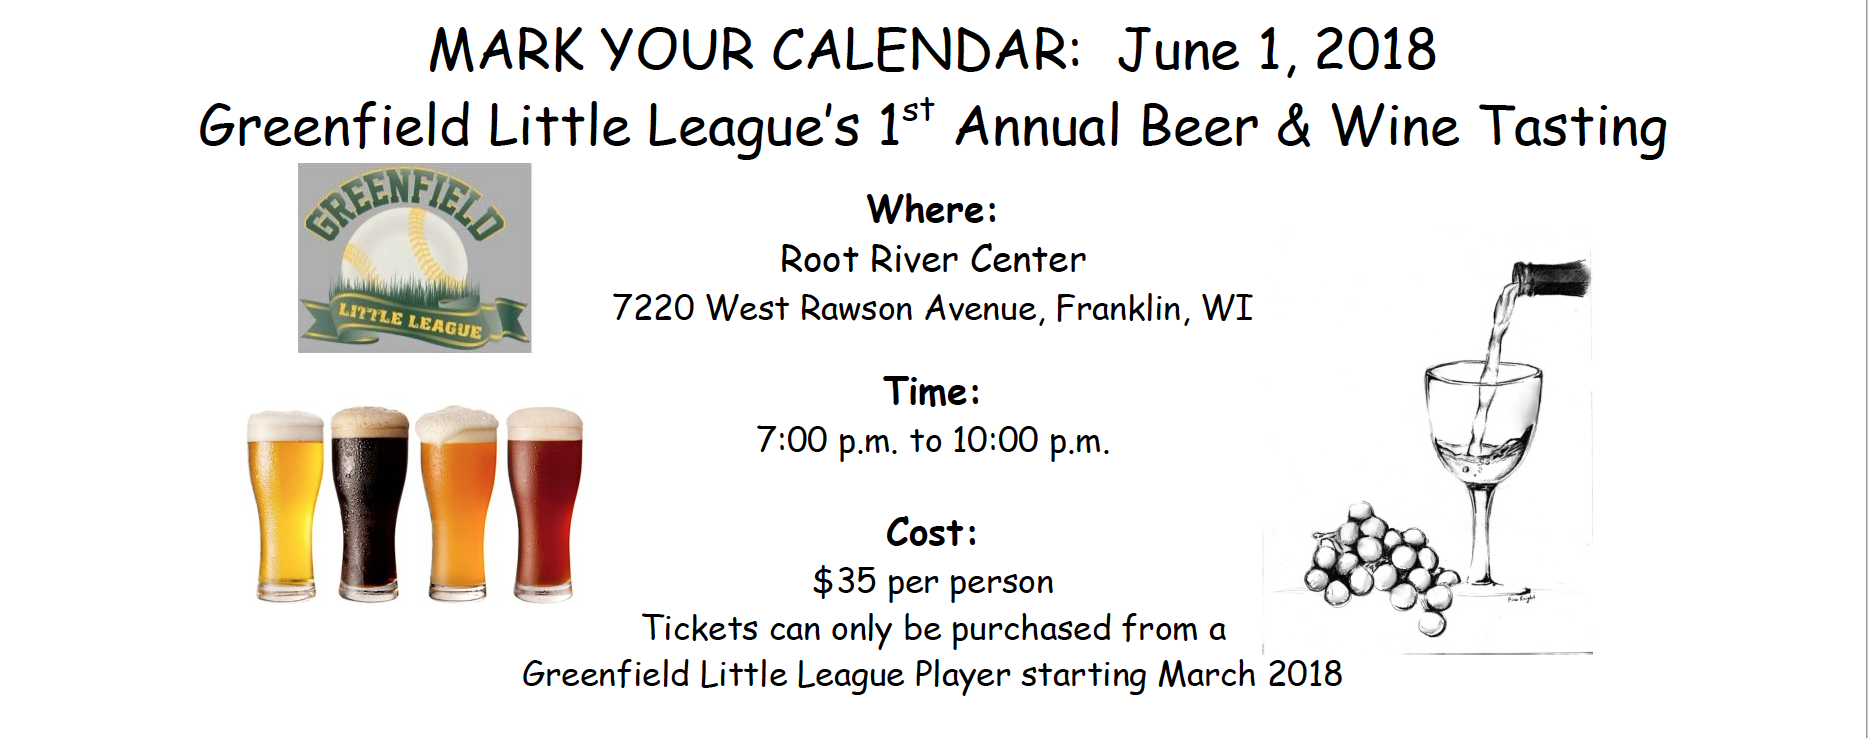 Beer and wine tasting Greenfield Little League